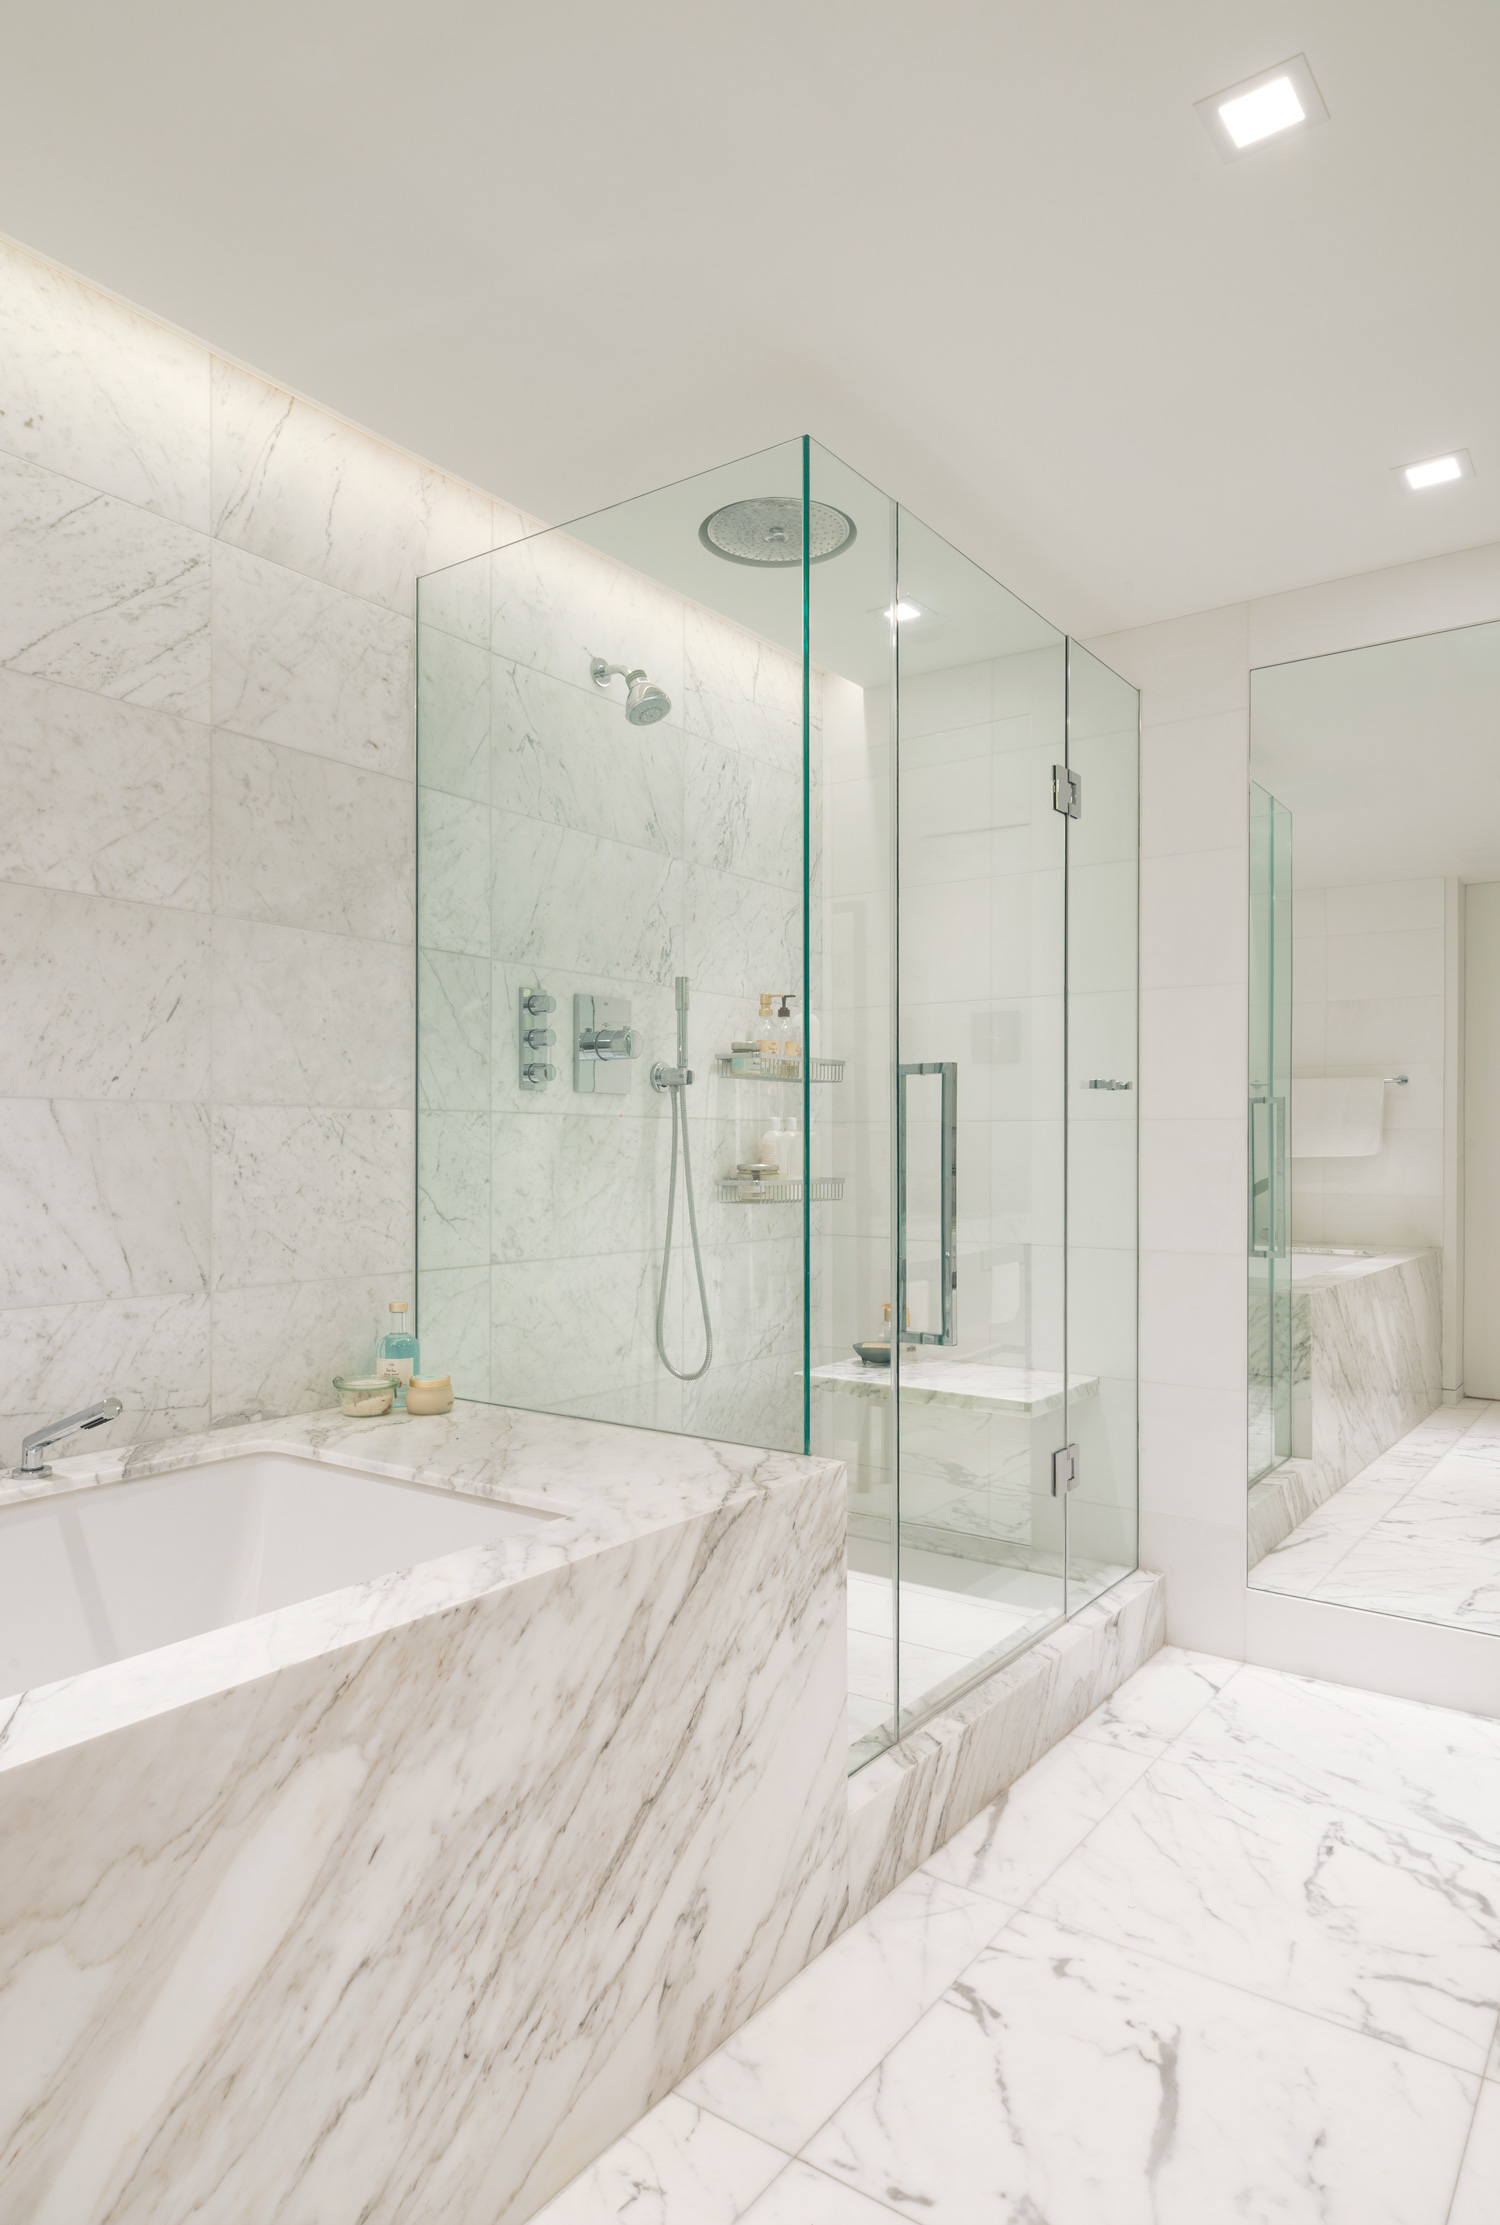 new-york-architect-adi-gershoni-master-bathroom-6.jpg